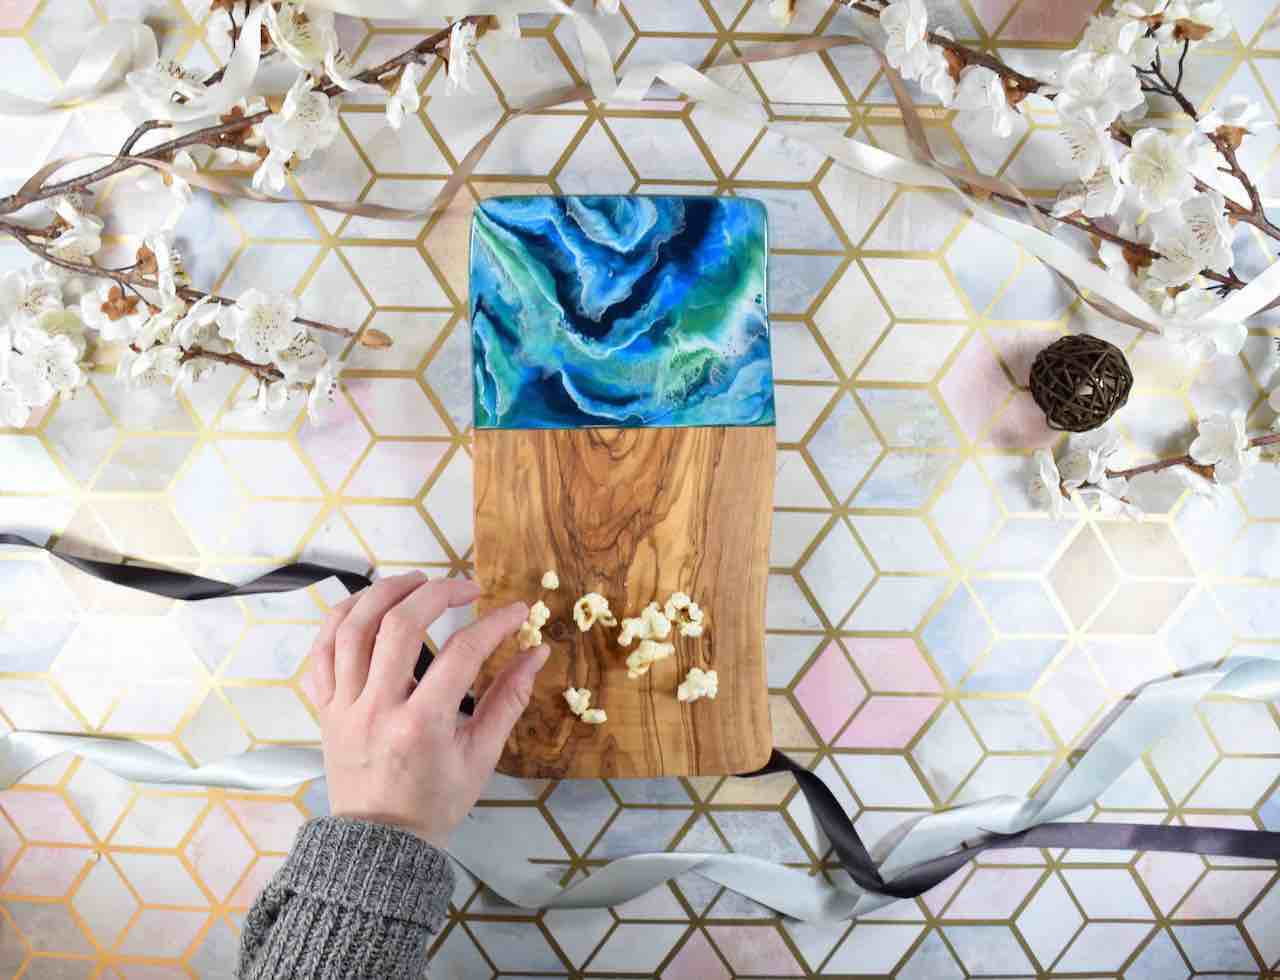 Rustic Olive Wood Cutting Board 30cm | Ocean Blue Green Resin Art